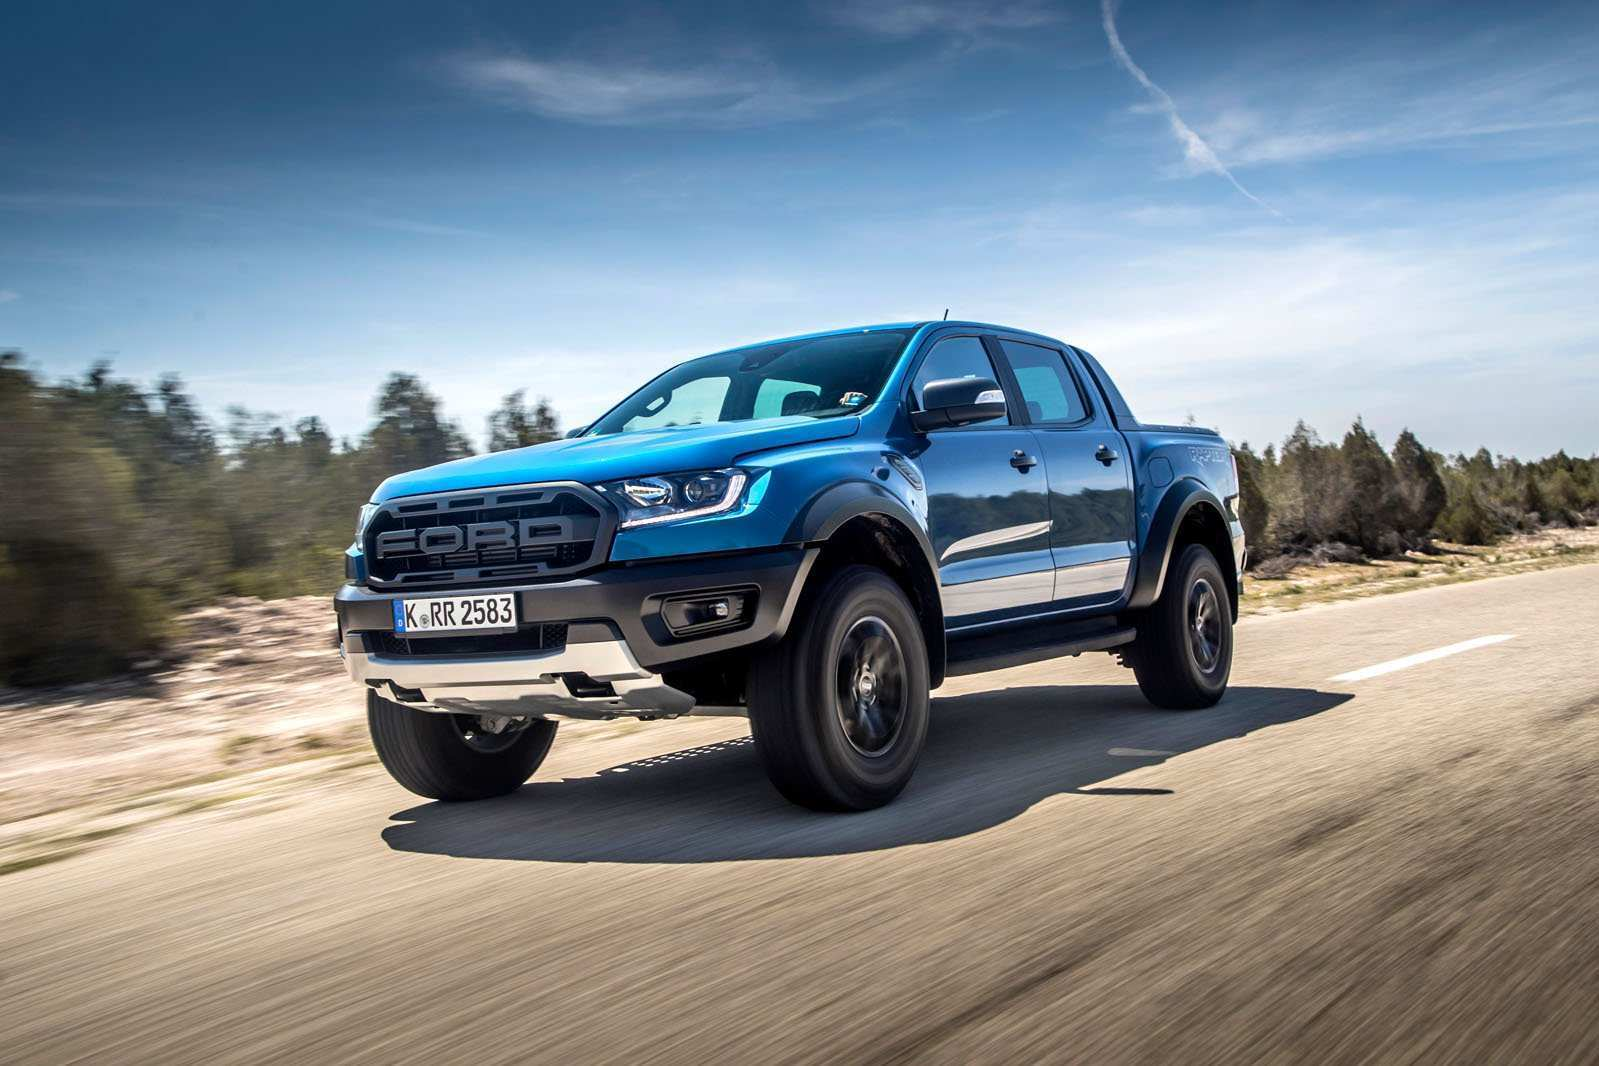 36 All New Ford 2019 Price Release Date Price And Review Spesification with Ford 2019 Price Release Date Price And Review